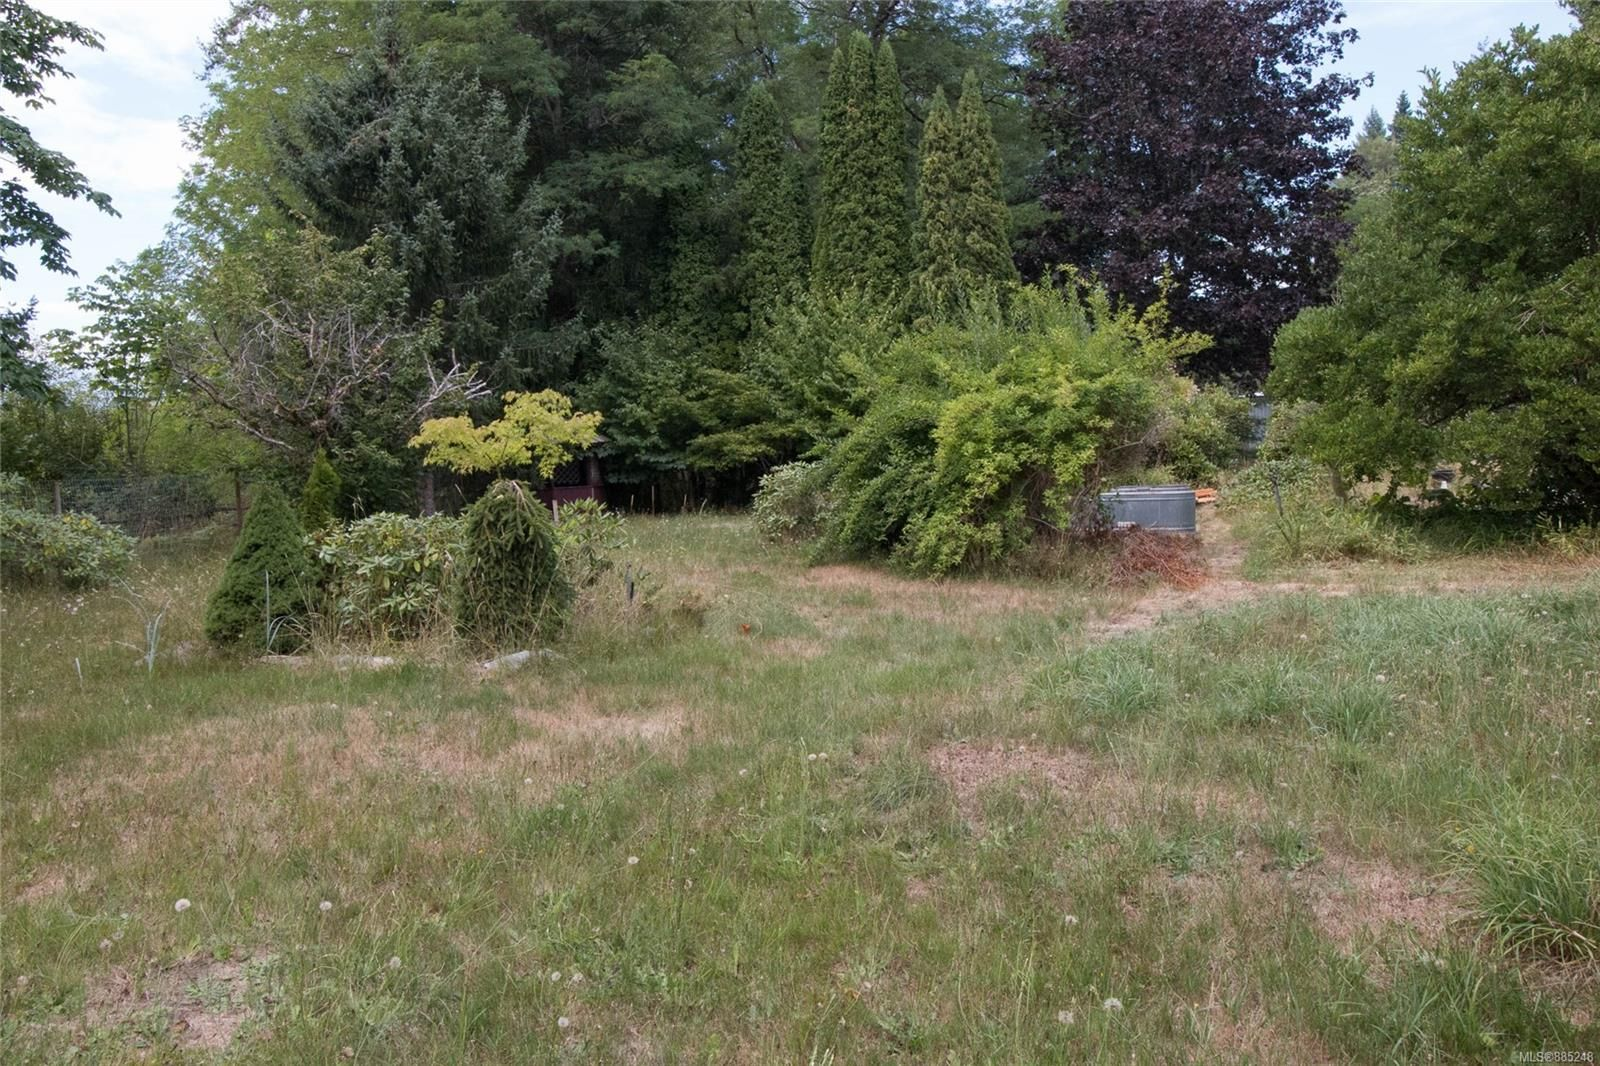 Photo 4: Photos: 5866 Nelson Rd in : CV Courtenay North House for sale (Comox Valley)  : MLS®# 885248